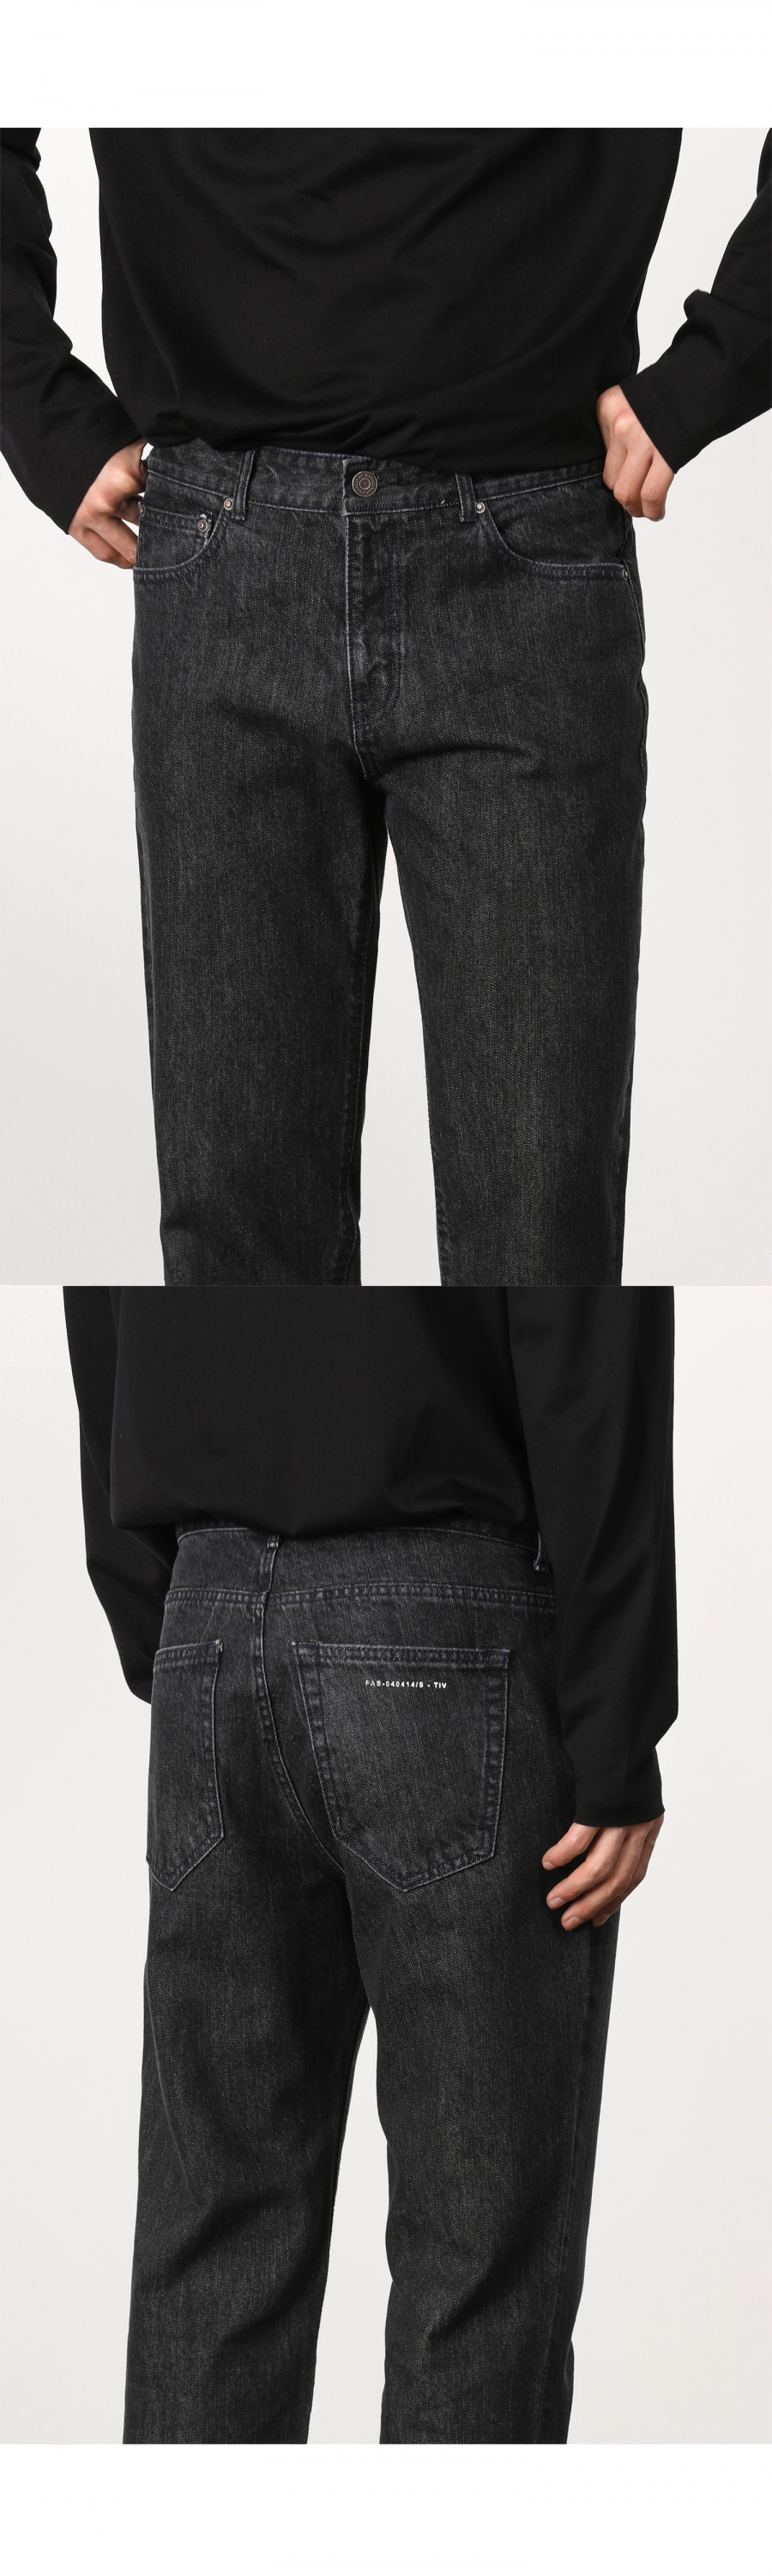 페이탈리즘(FATALISM) #0186 Heritage black mannish crop fit